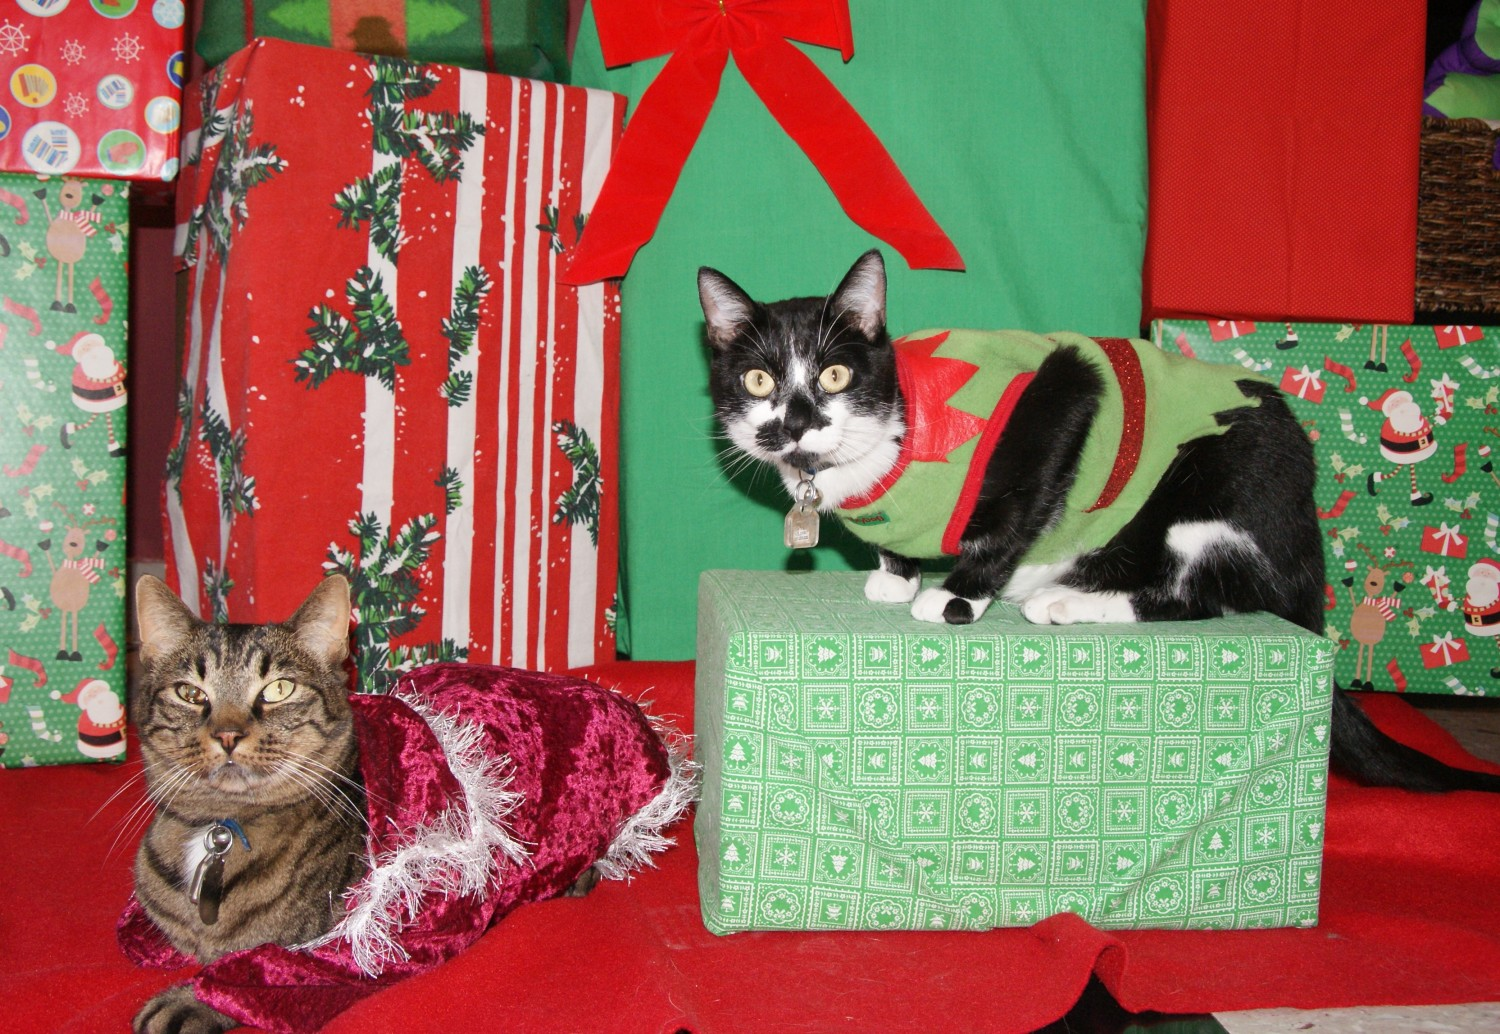 Ranger and Binx wish you a Happy Holiday